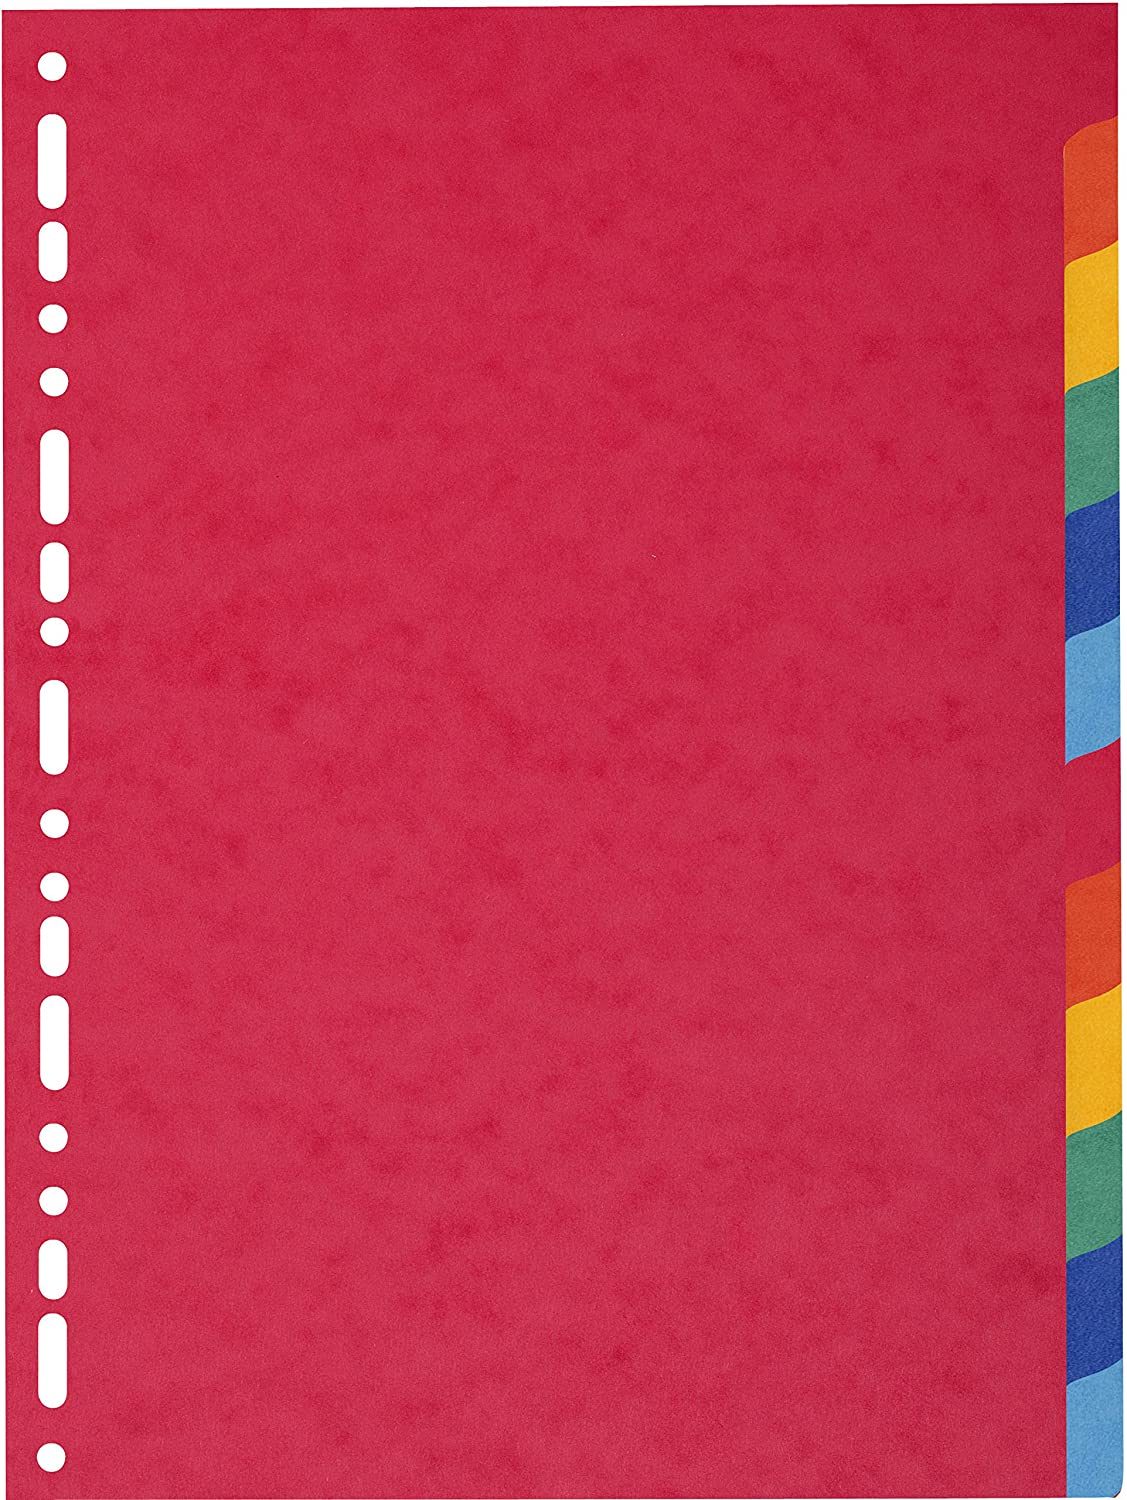 Exacompta Forever 148 x 210 mm Recycled Dividers, 180 gsm, 4 Part, Multi-Colour Reg. 804E